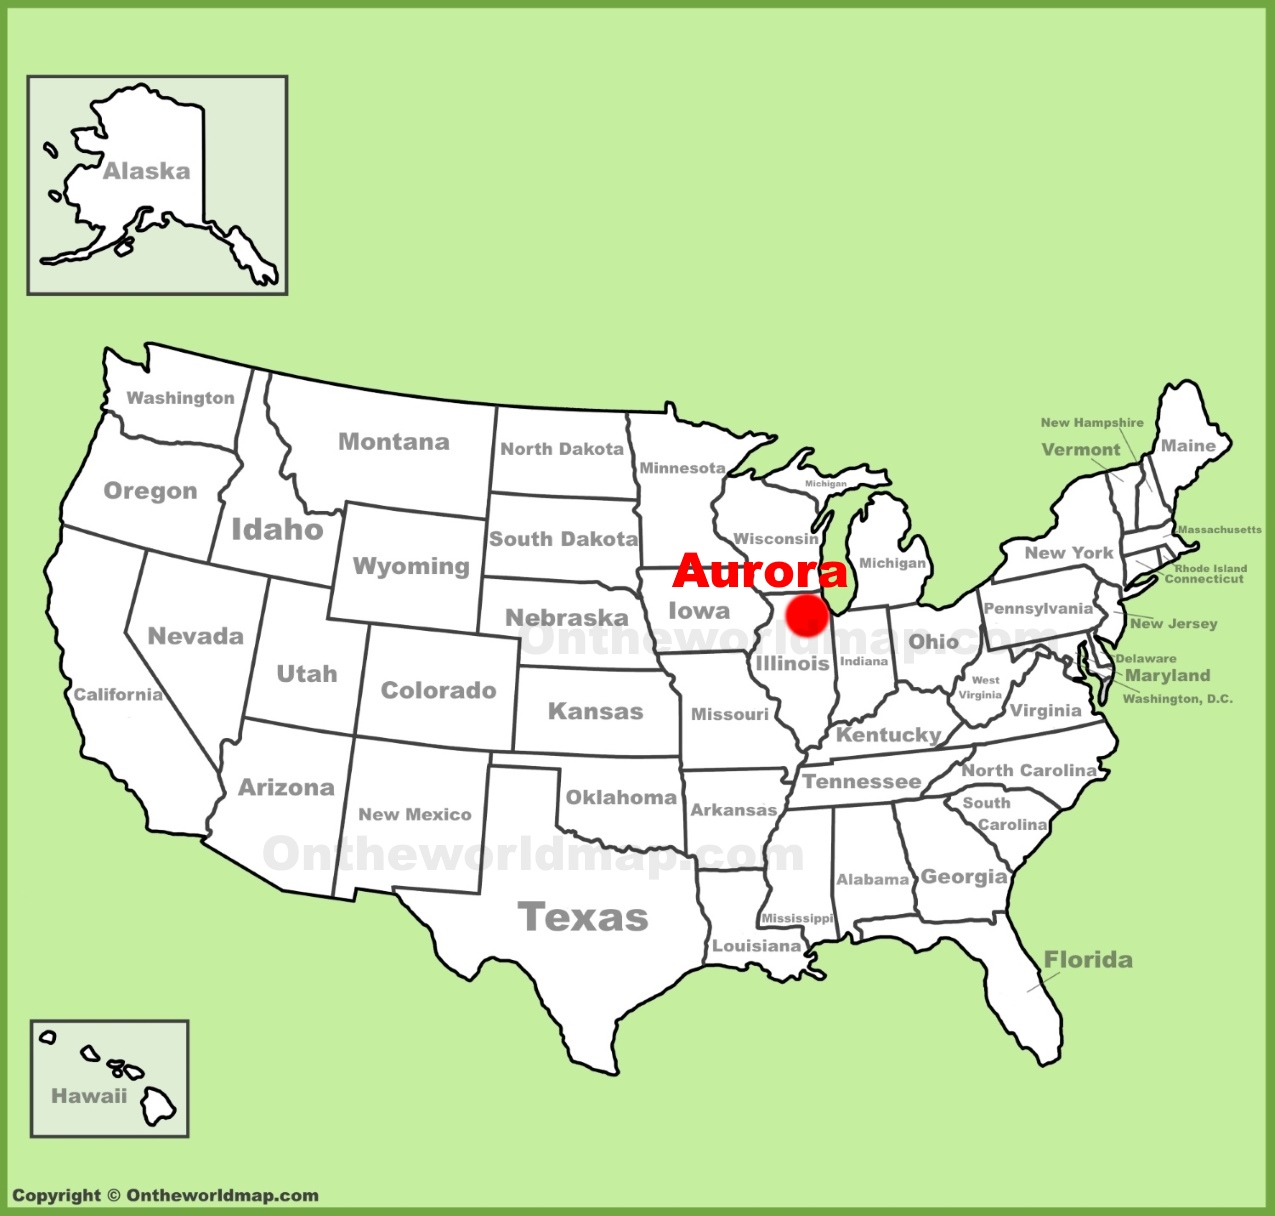 Aurora Illinois Location On The U S Map